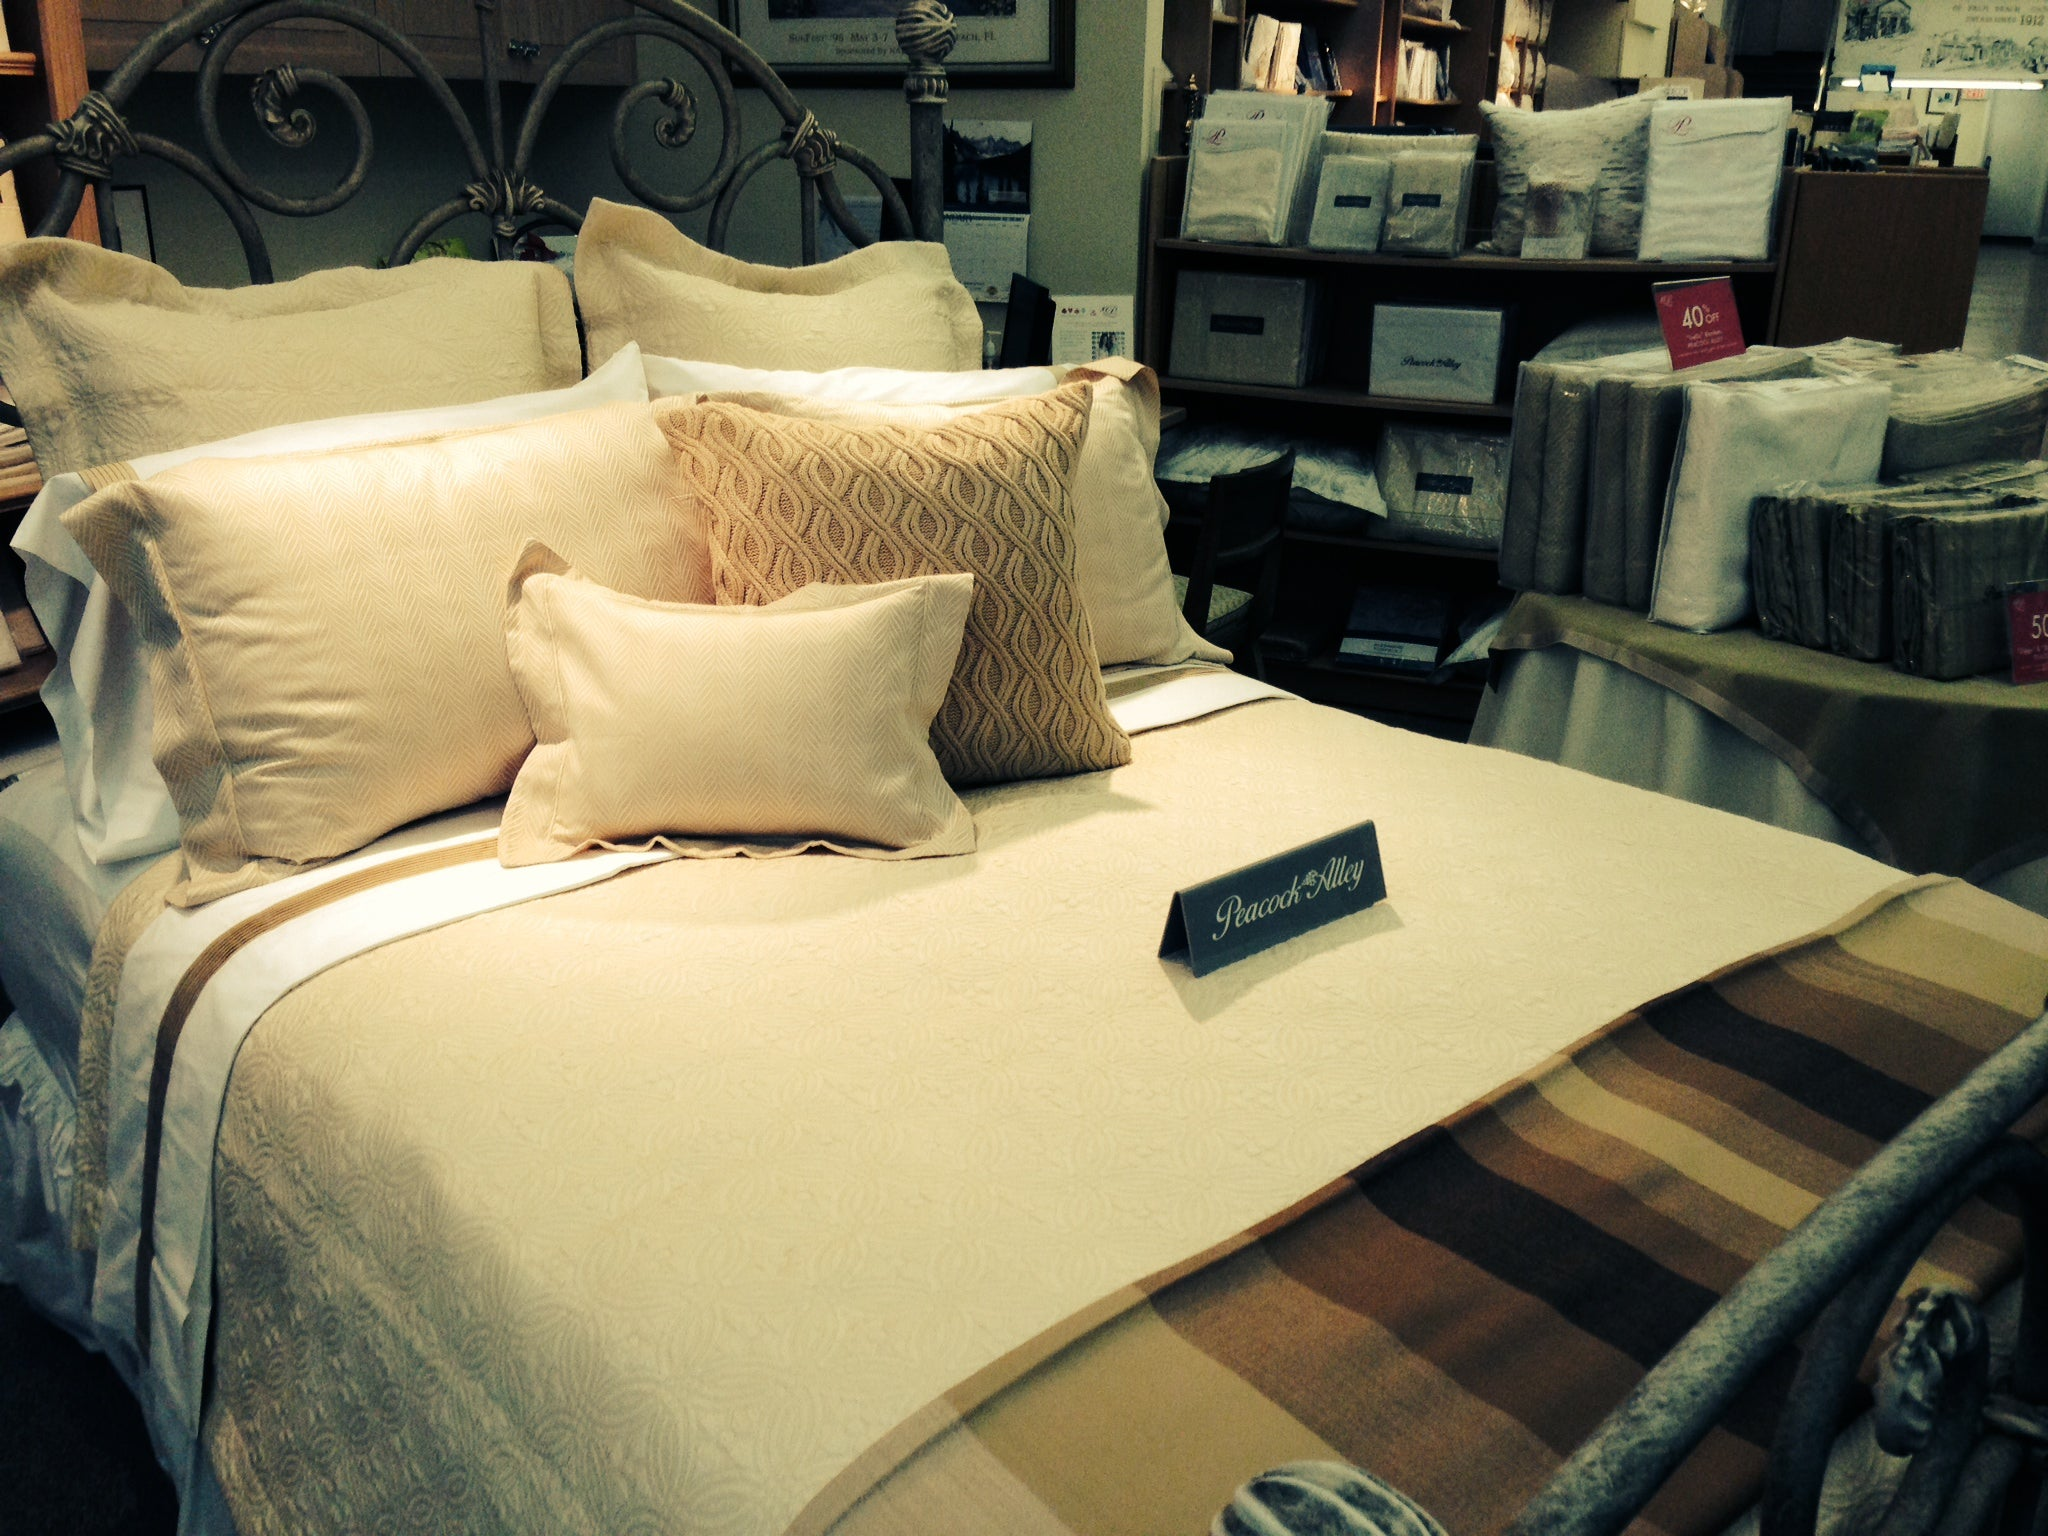 A store display bed in shades of gold and brown